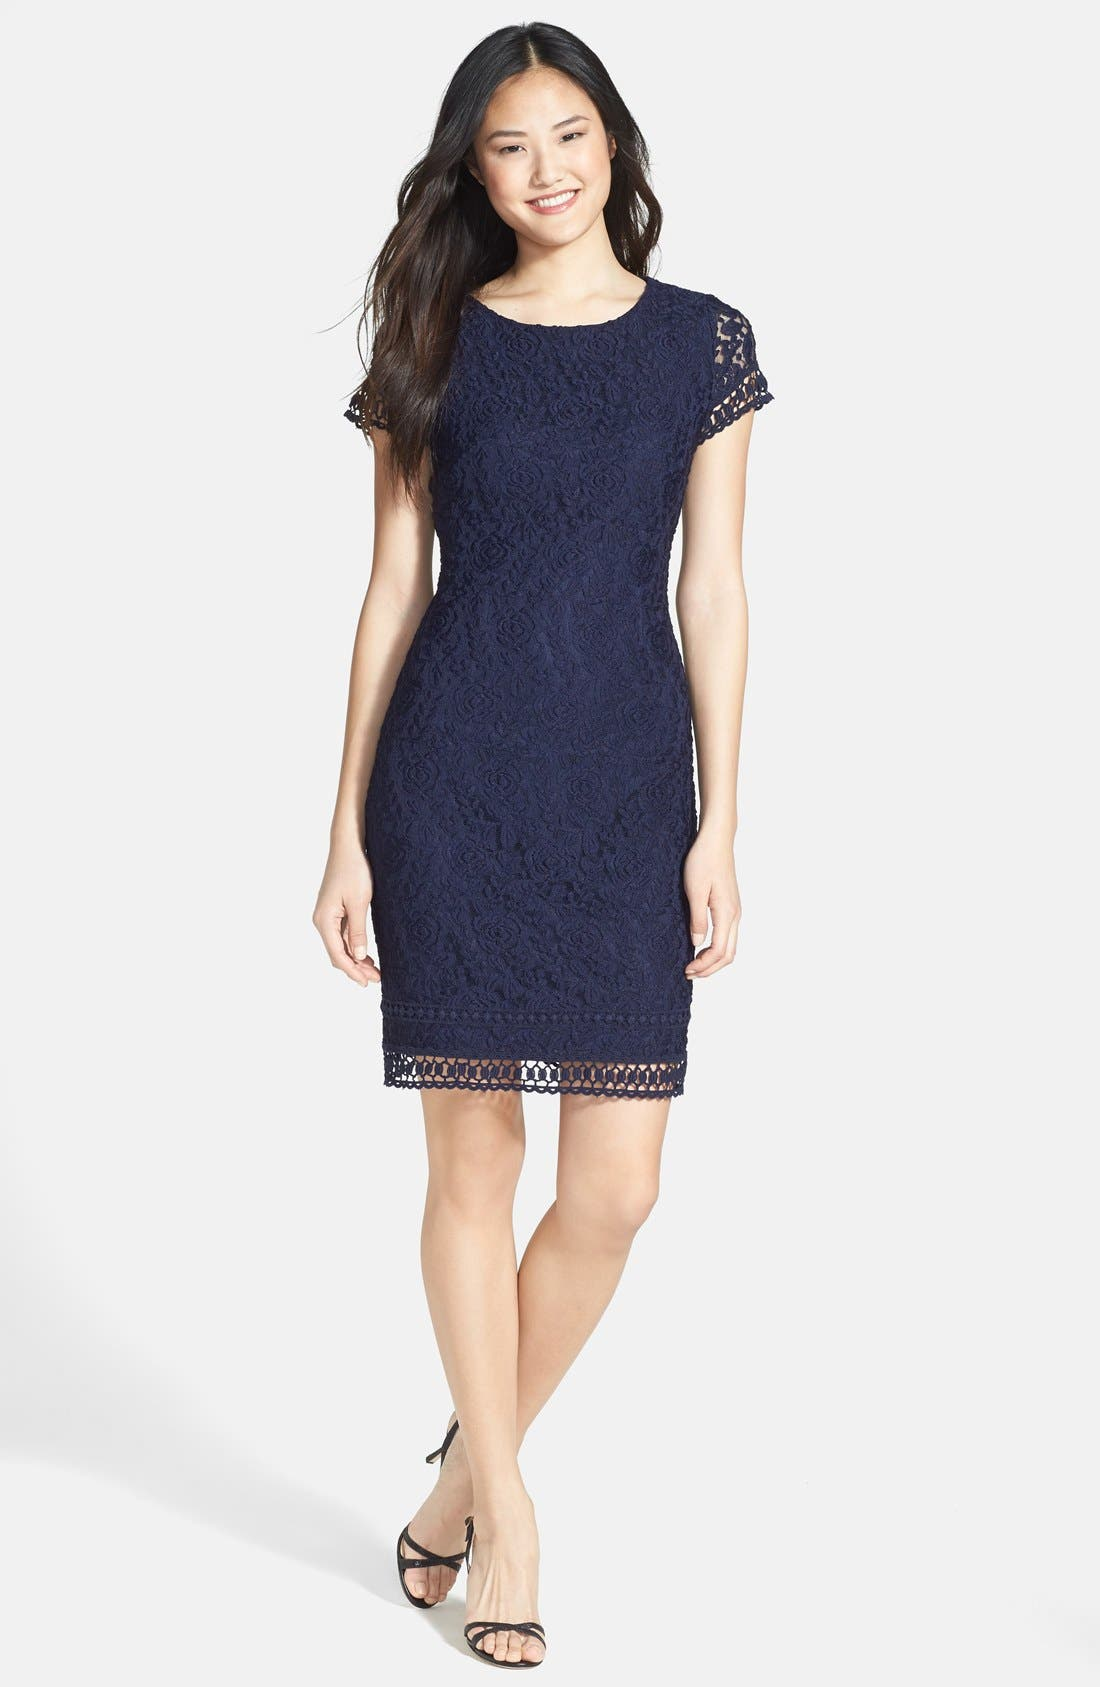 Alternate Image 1 Selected - Laundry by Shelli Segal Lace Sheath Dress (Petite)